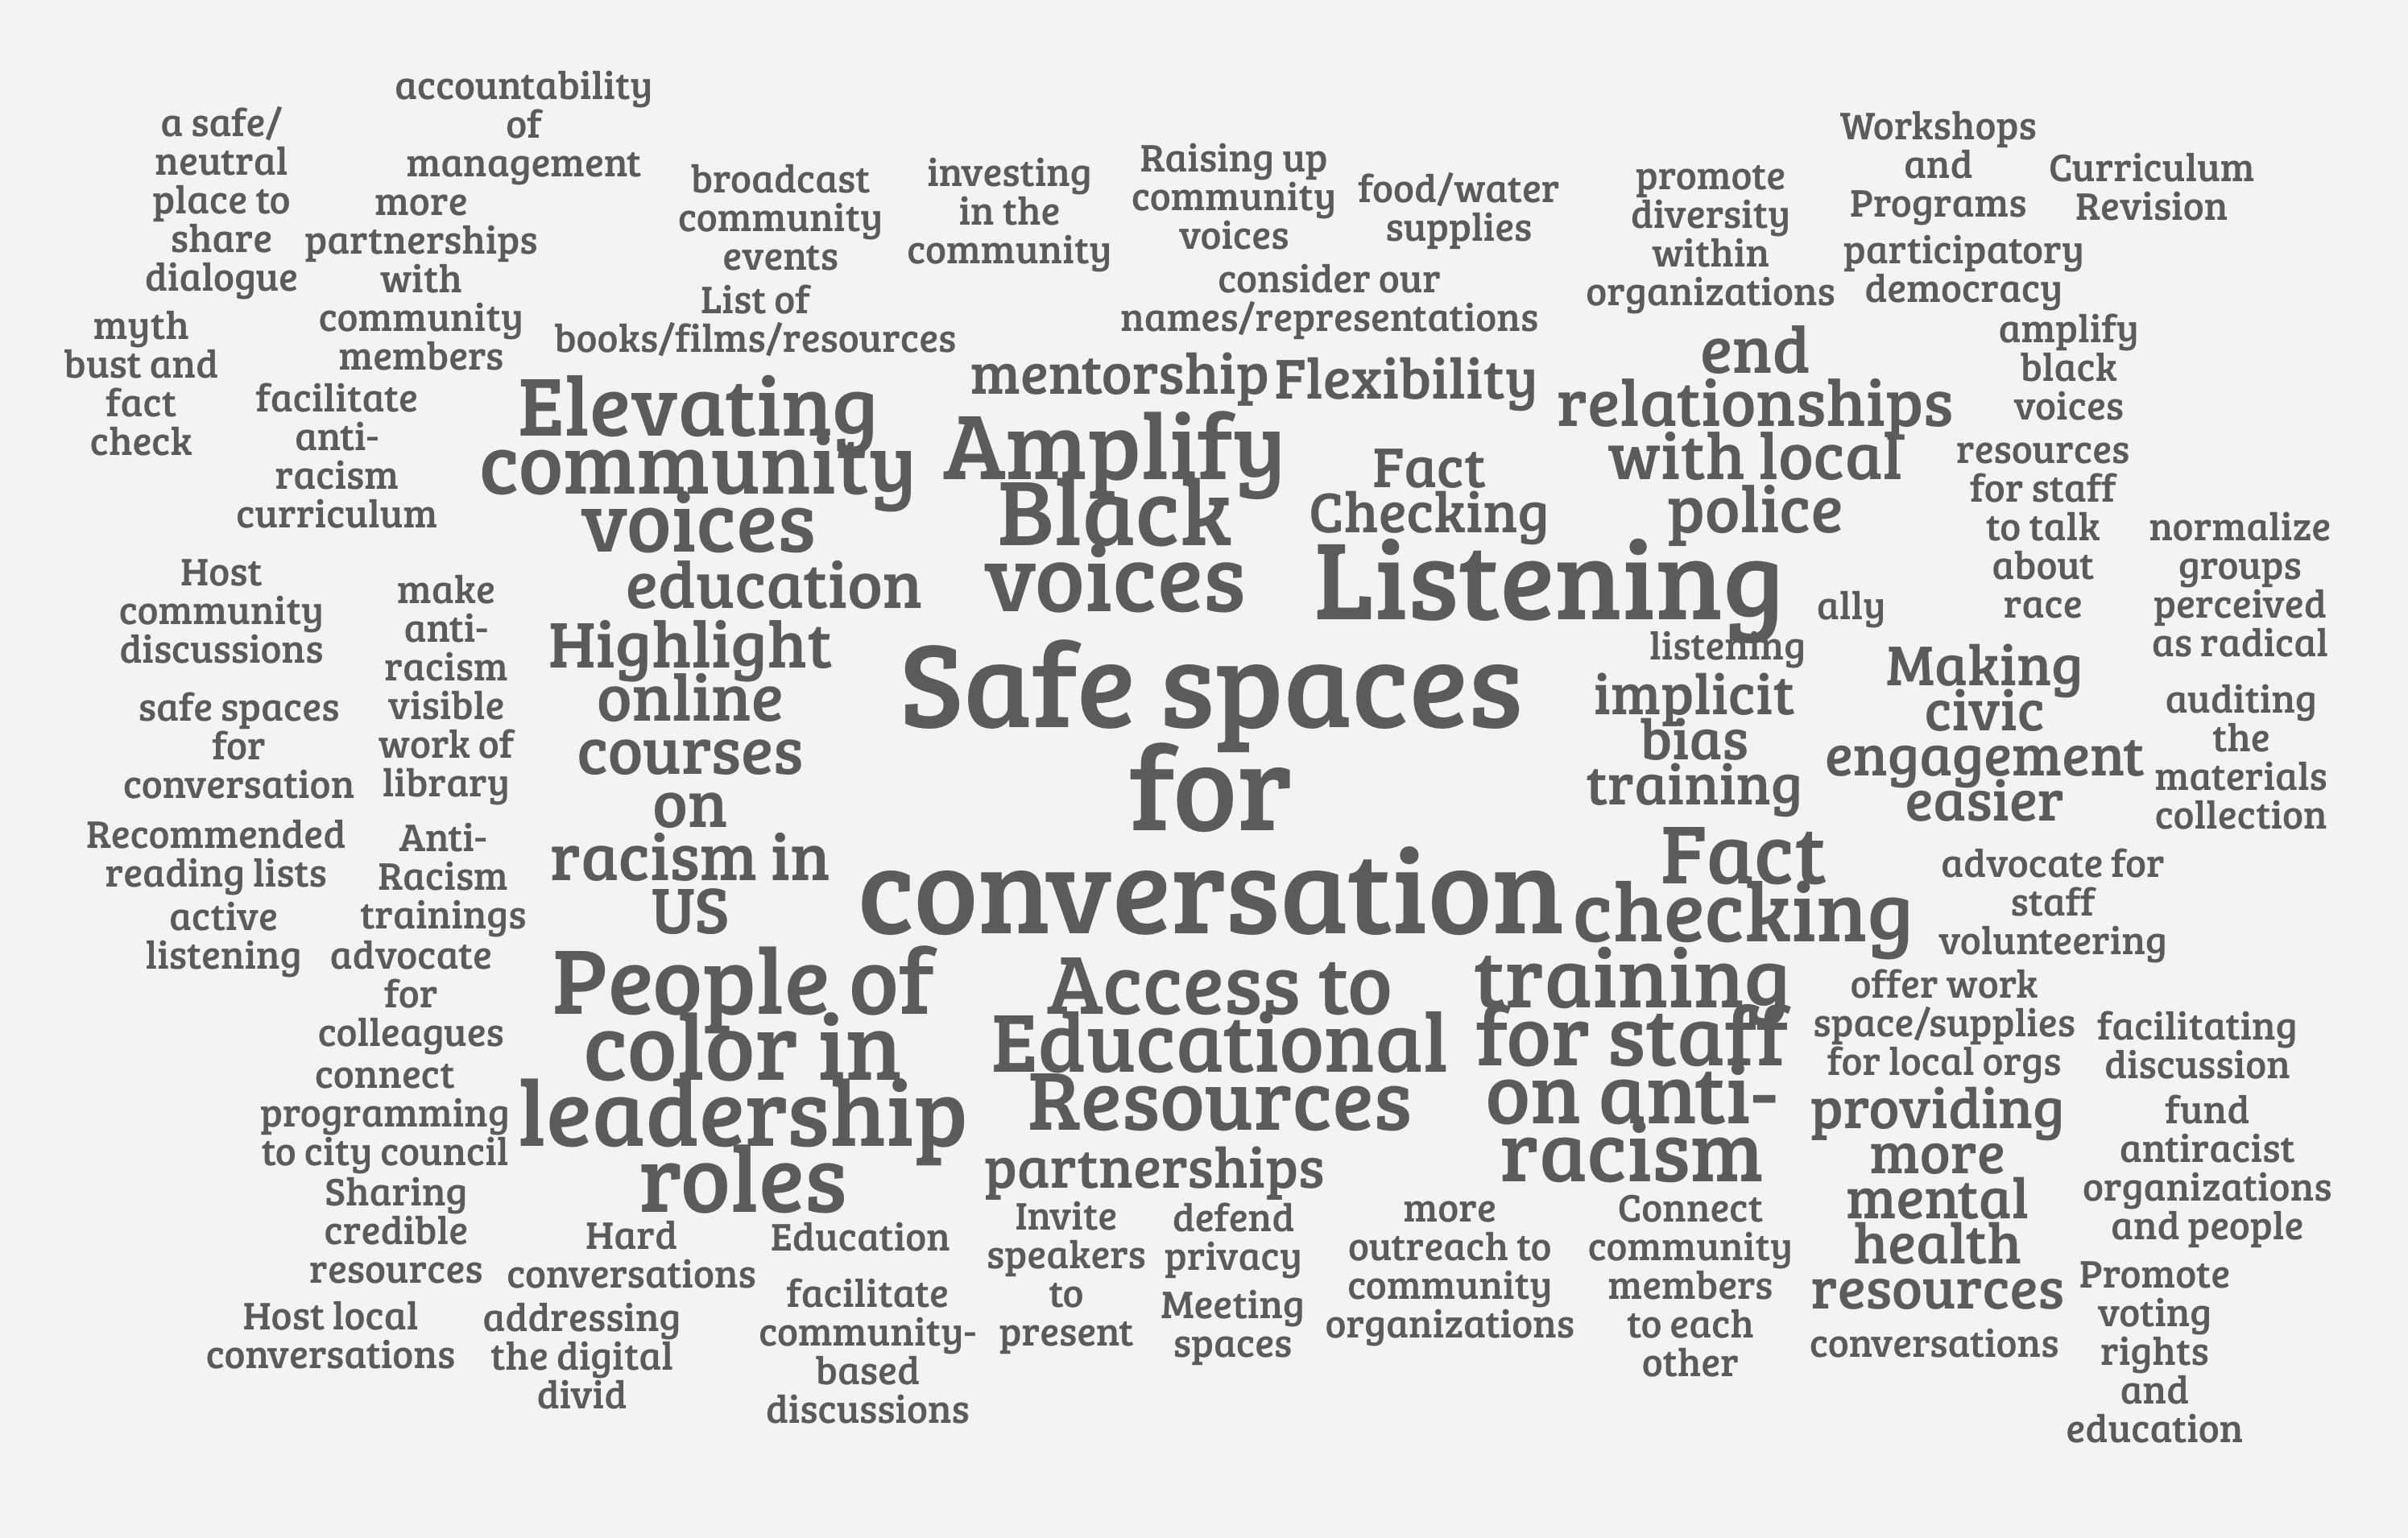 """A word cloud with 50+ text responses addressing ways that public institutions can support activism and anti-racism education. The most popular responses are """"safe spaces for conversation"""", """"Amplify Black voices"""", """"Listening"""", """"People of color in leadership roles"""", """"Fact-checking"""", and """"training for staff on anti-racism."""""""